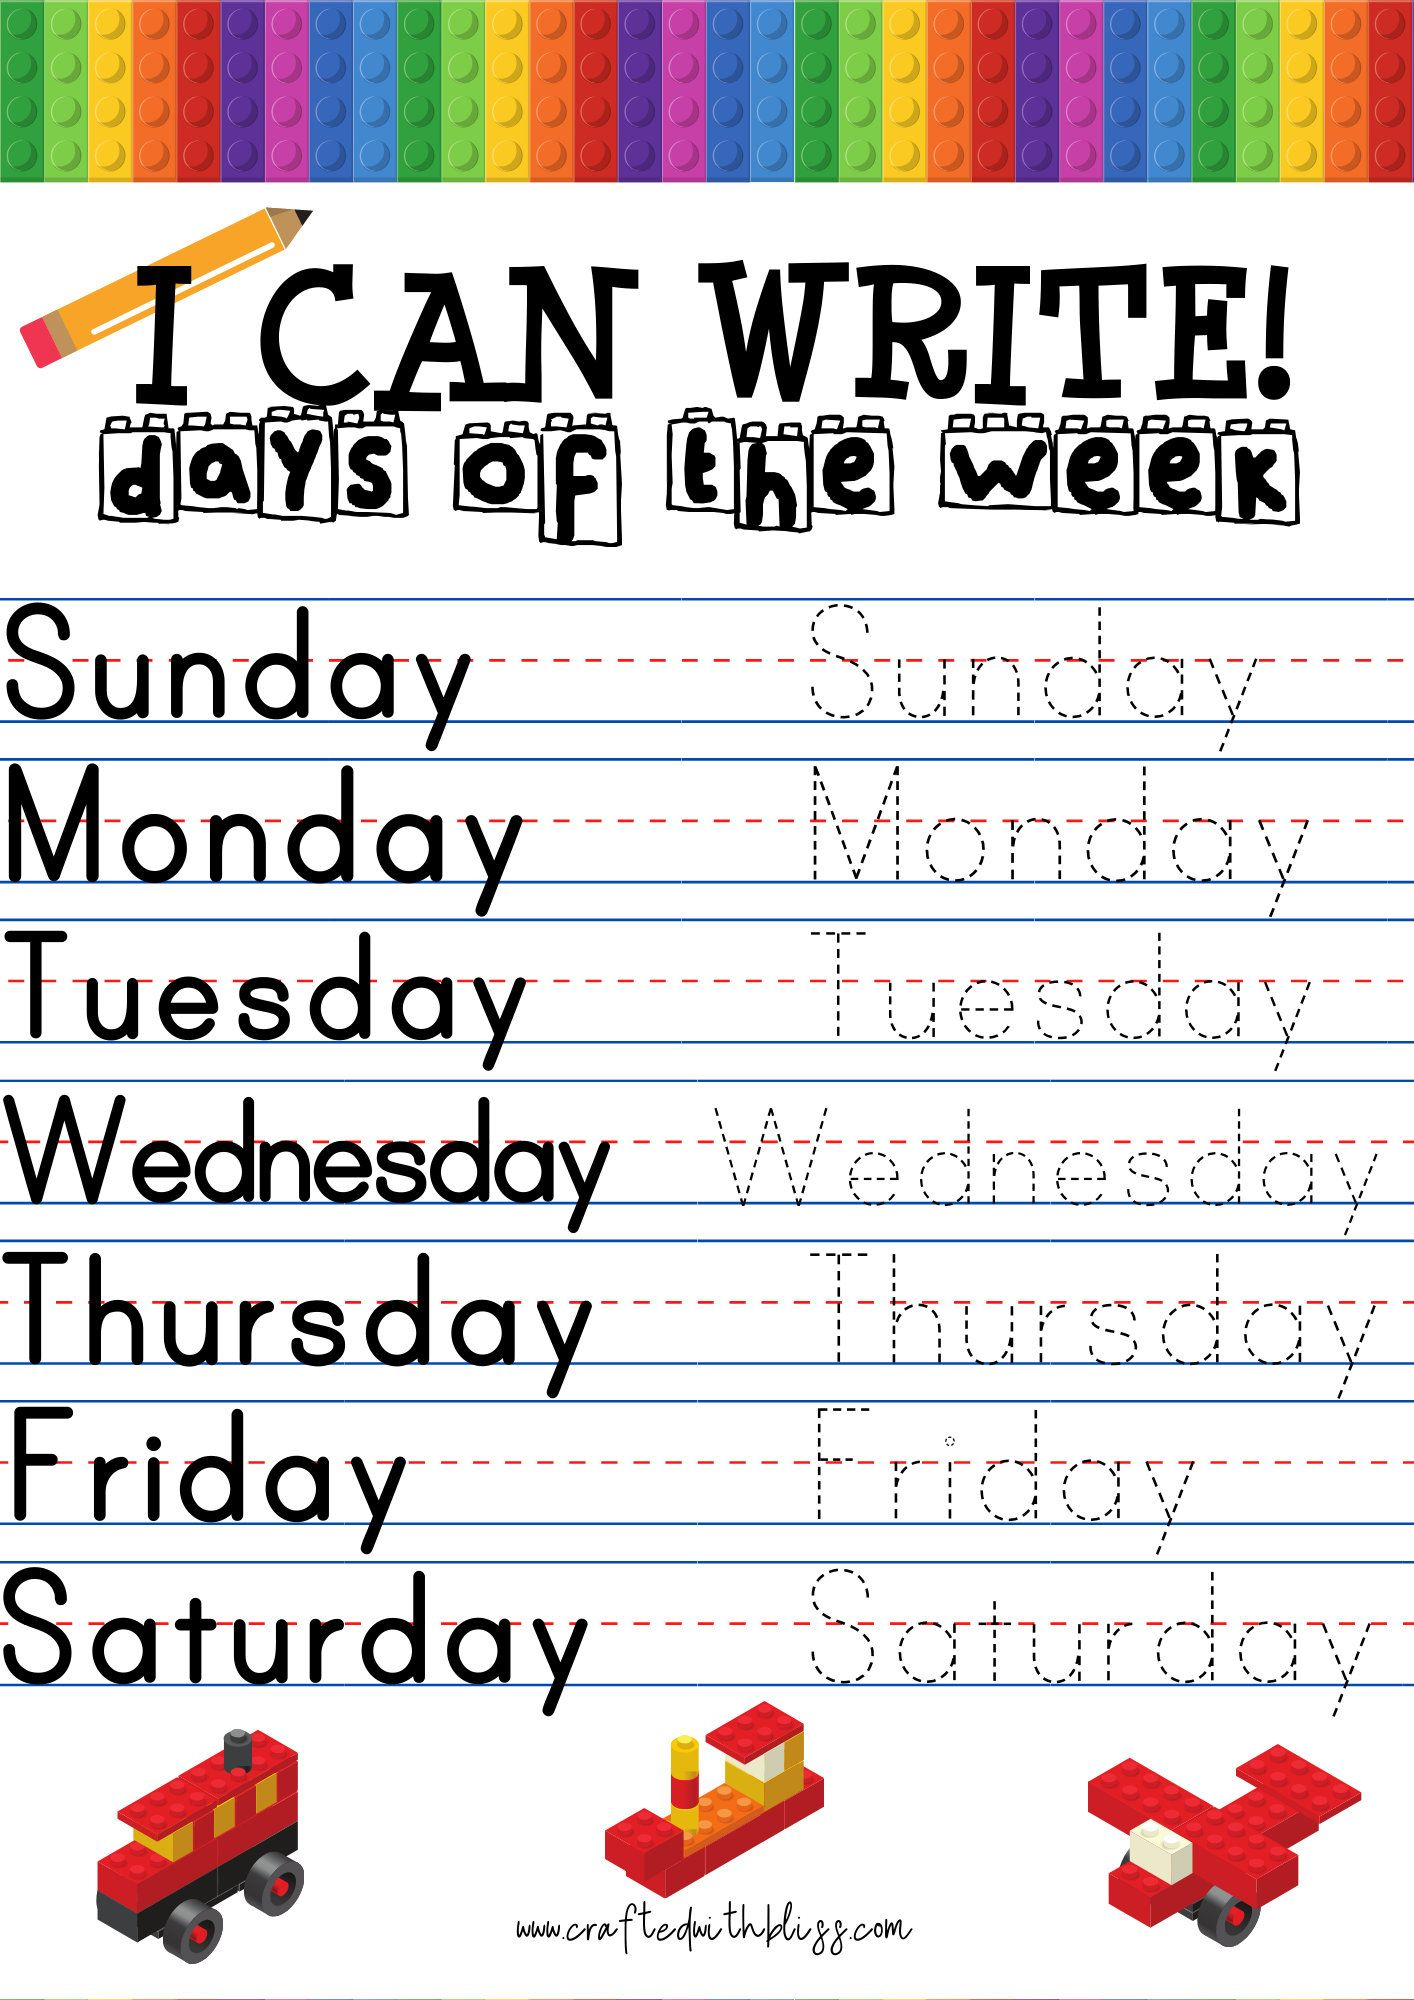 I Can Write Days Of The Week Months Of The Year Alphabet